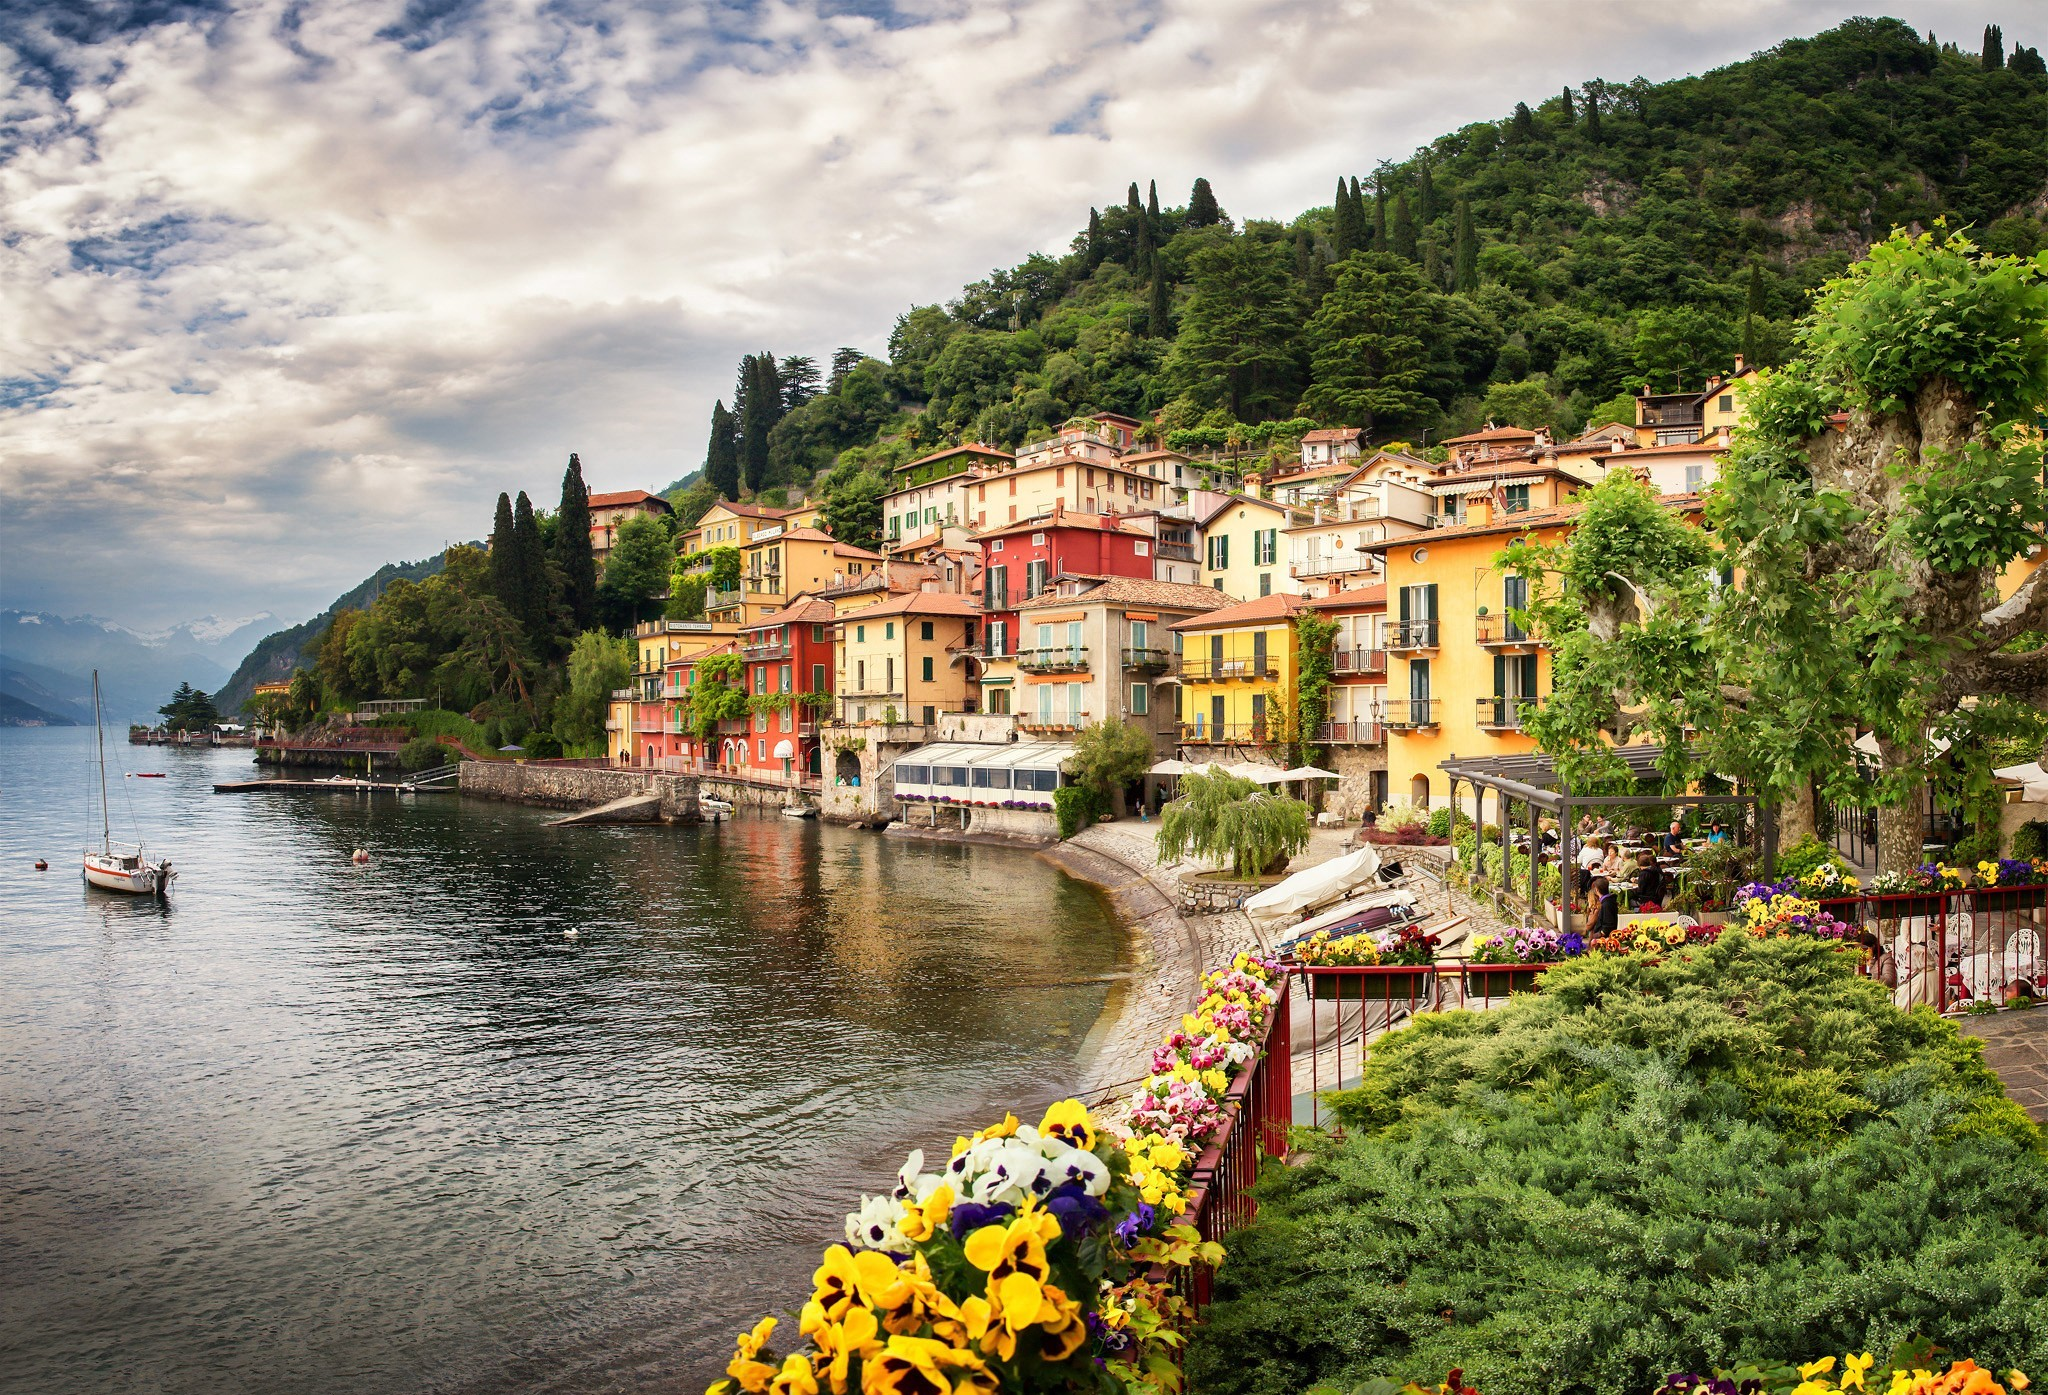 lake como chat Located in the heart of the lake como region, the iconic grand hotel tremezzo is an authentic art nouveau palace offering a host of delights.